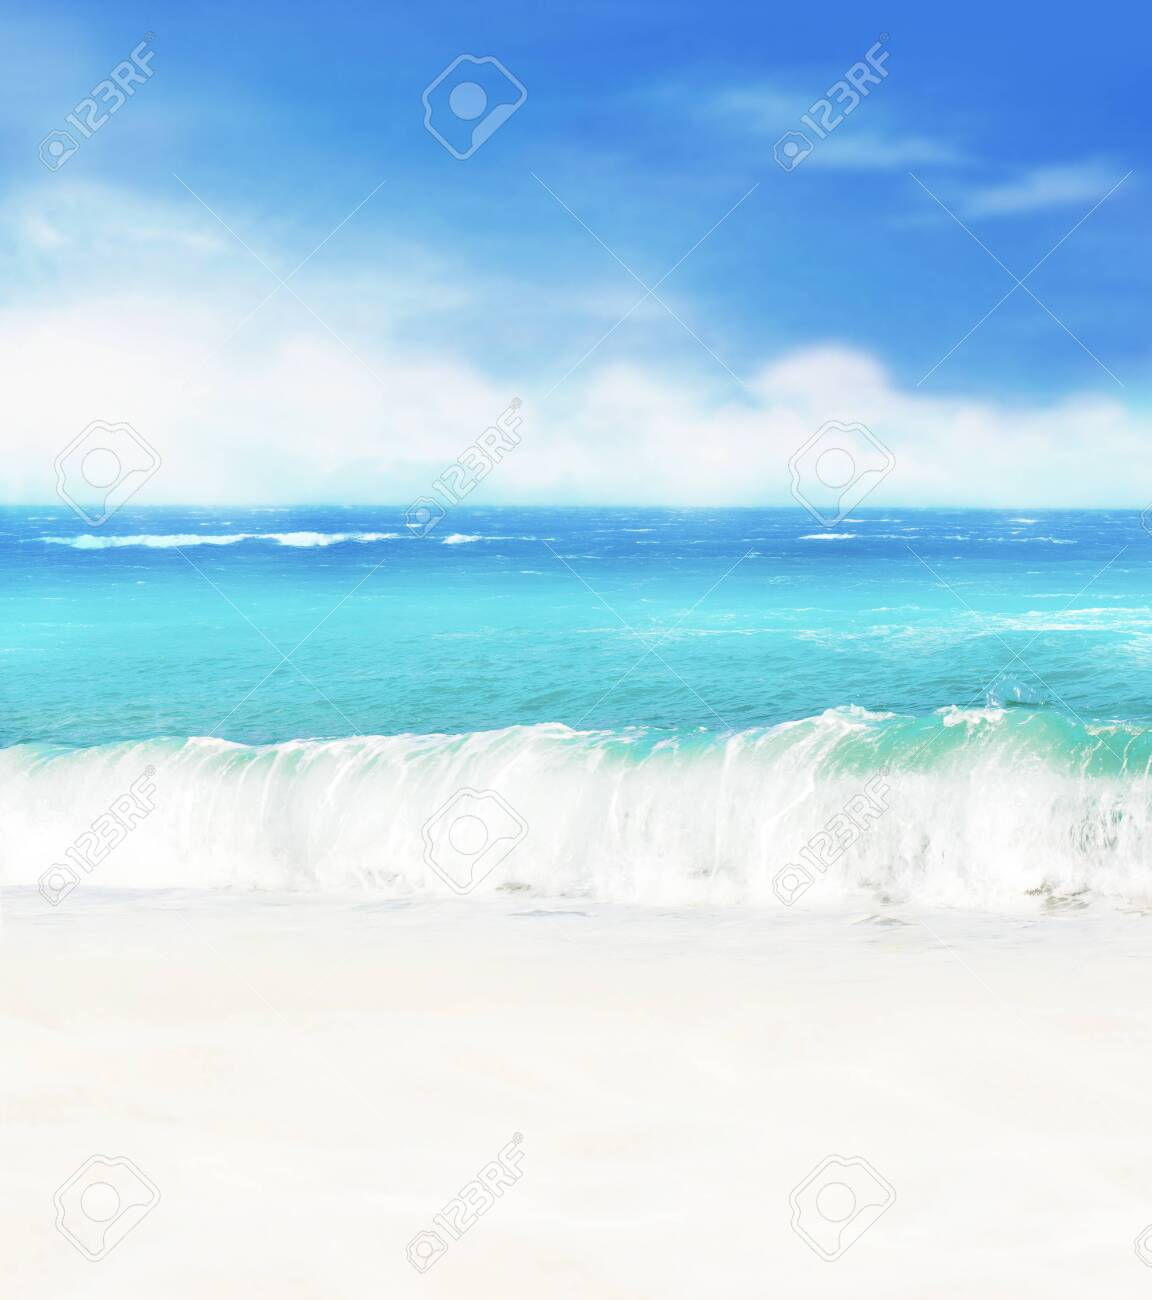 Summer background. White sand beach on a background of blue sea and blue sky. - 141153891